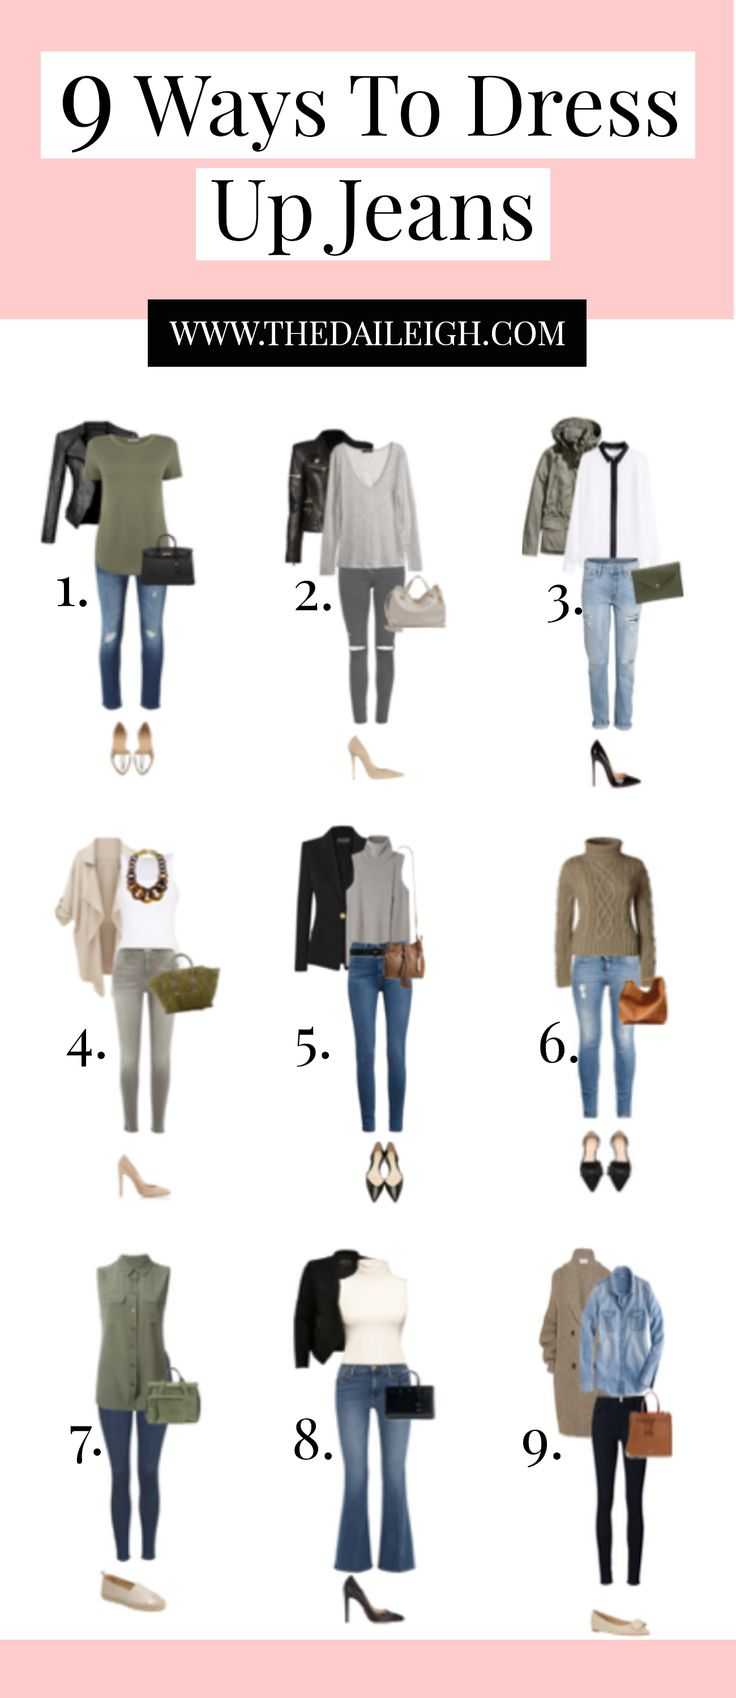 9 Ways To Dress Up Jeans - How To Dress Up Jeans   How To Dress   Wardrobe Basics   Styling Jeans